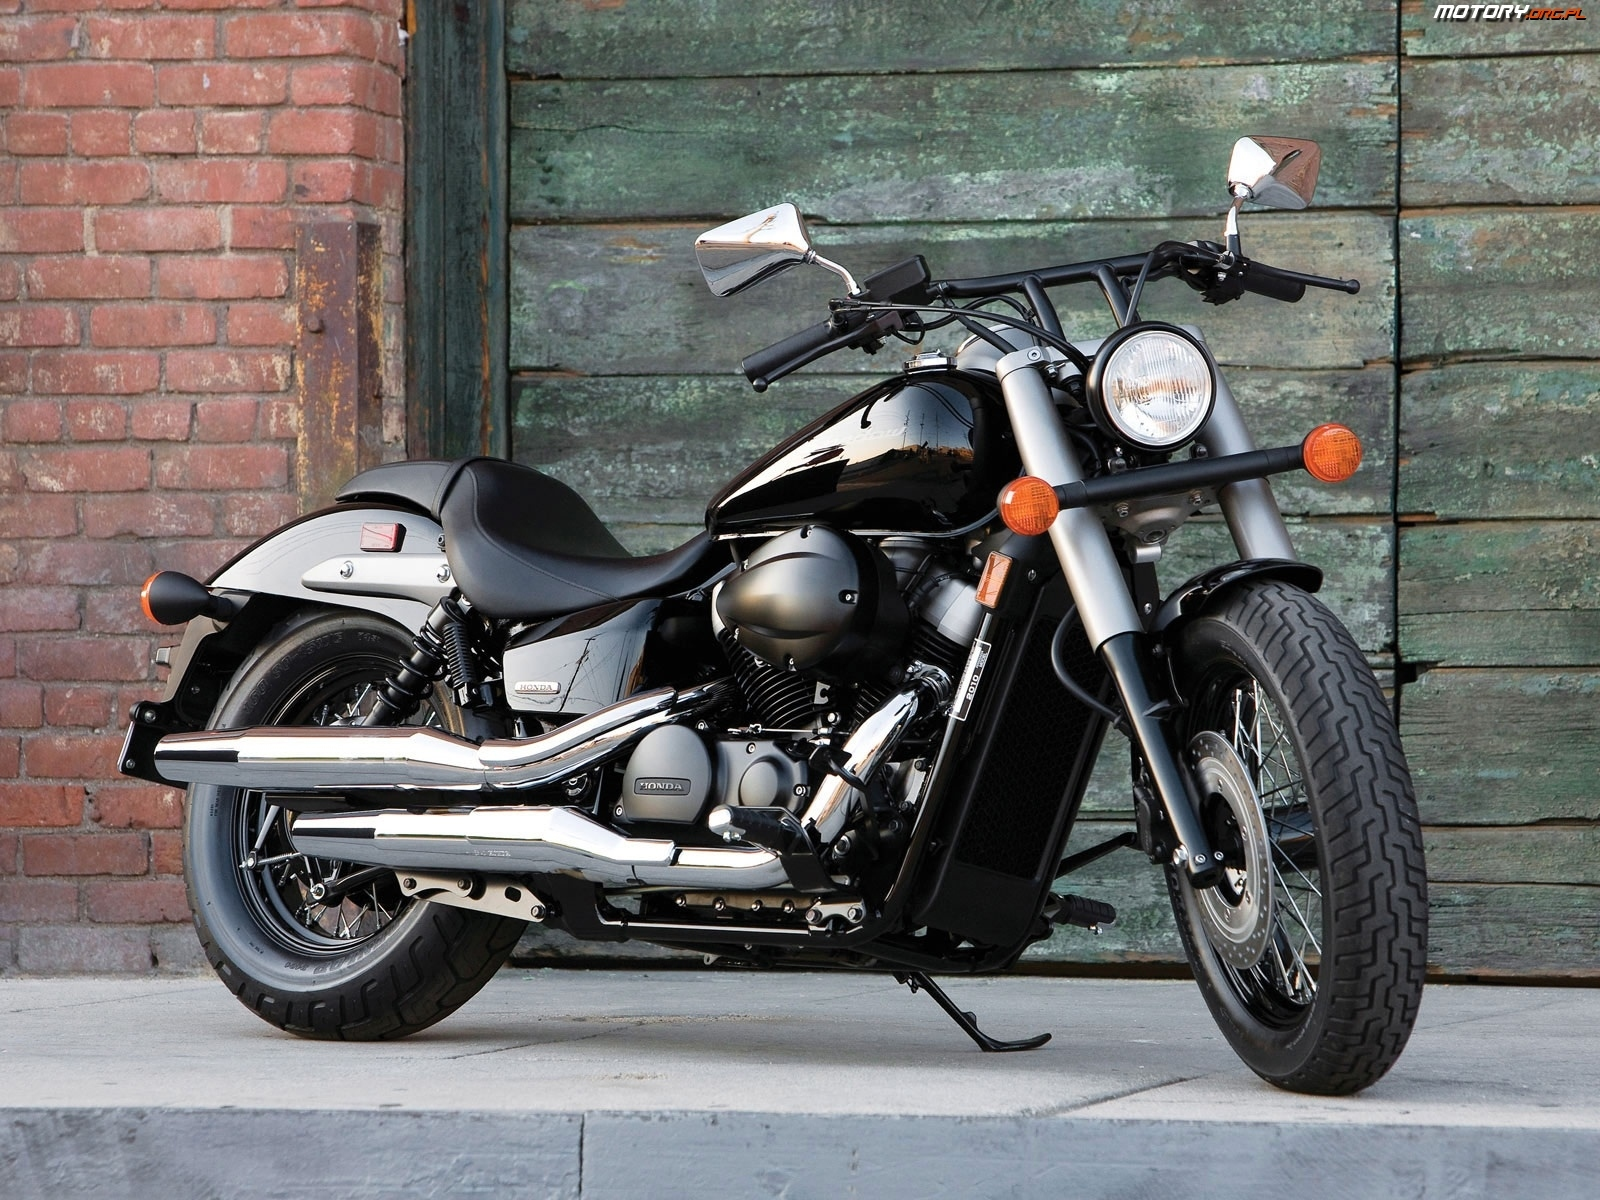 Honda VT 750 Shadow Phantom